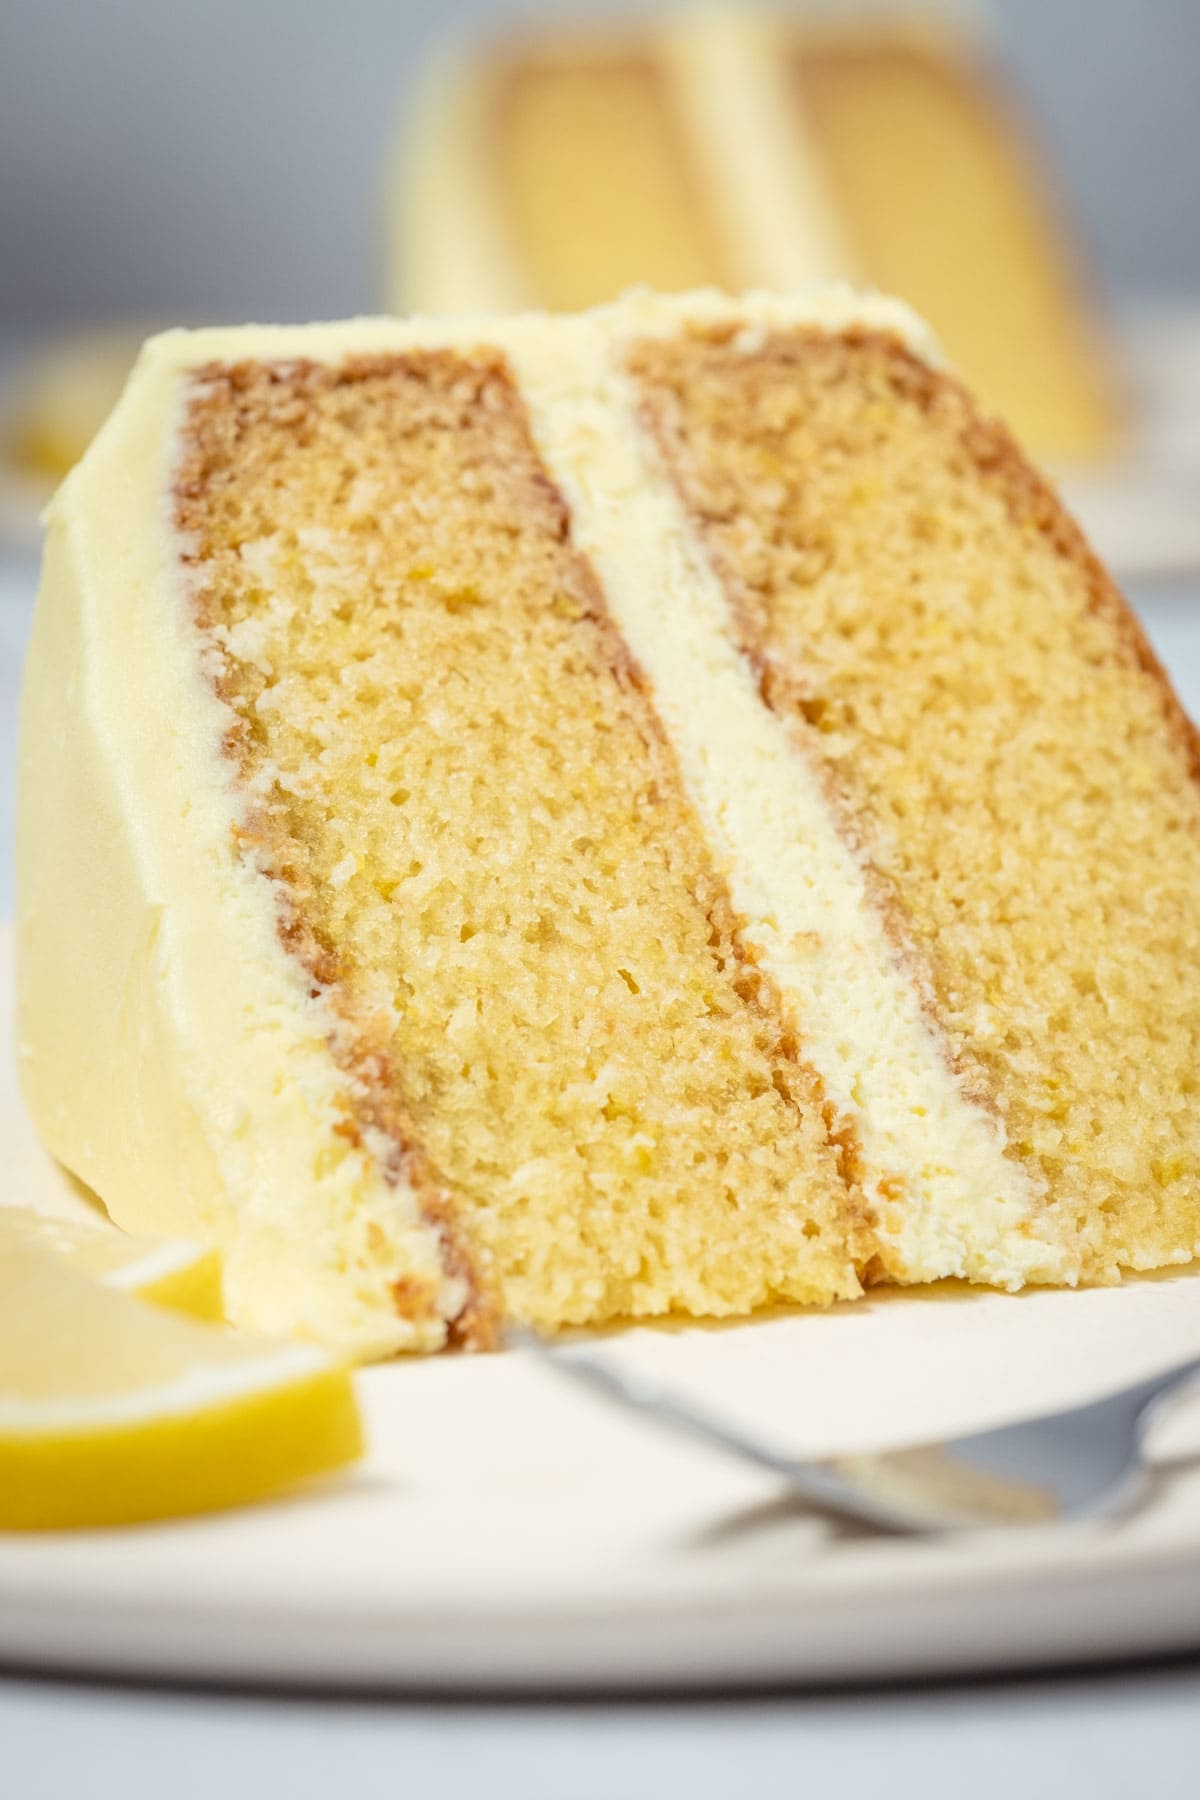 Slice of eggless lemon cake on a white plate with a cake fork.